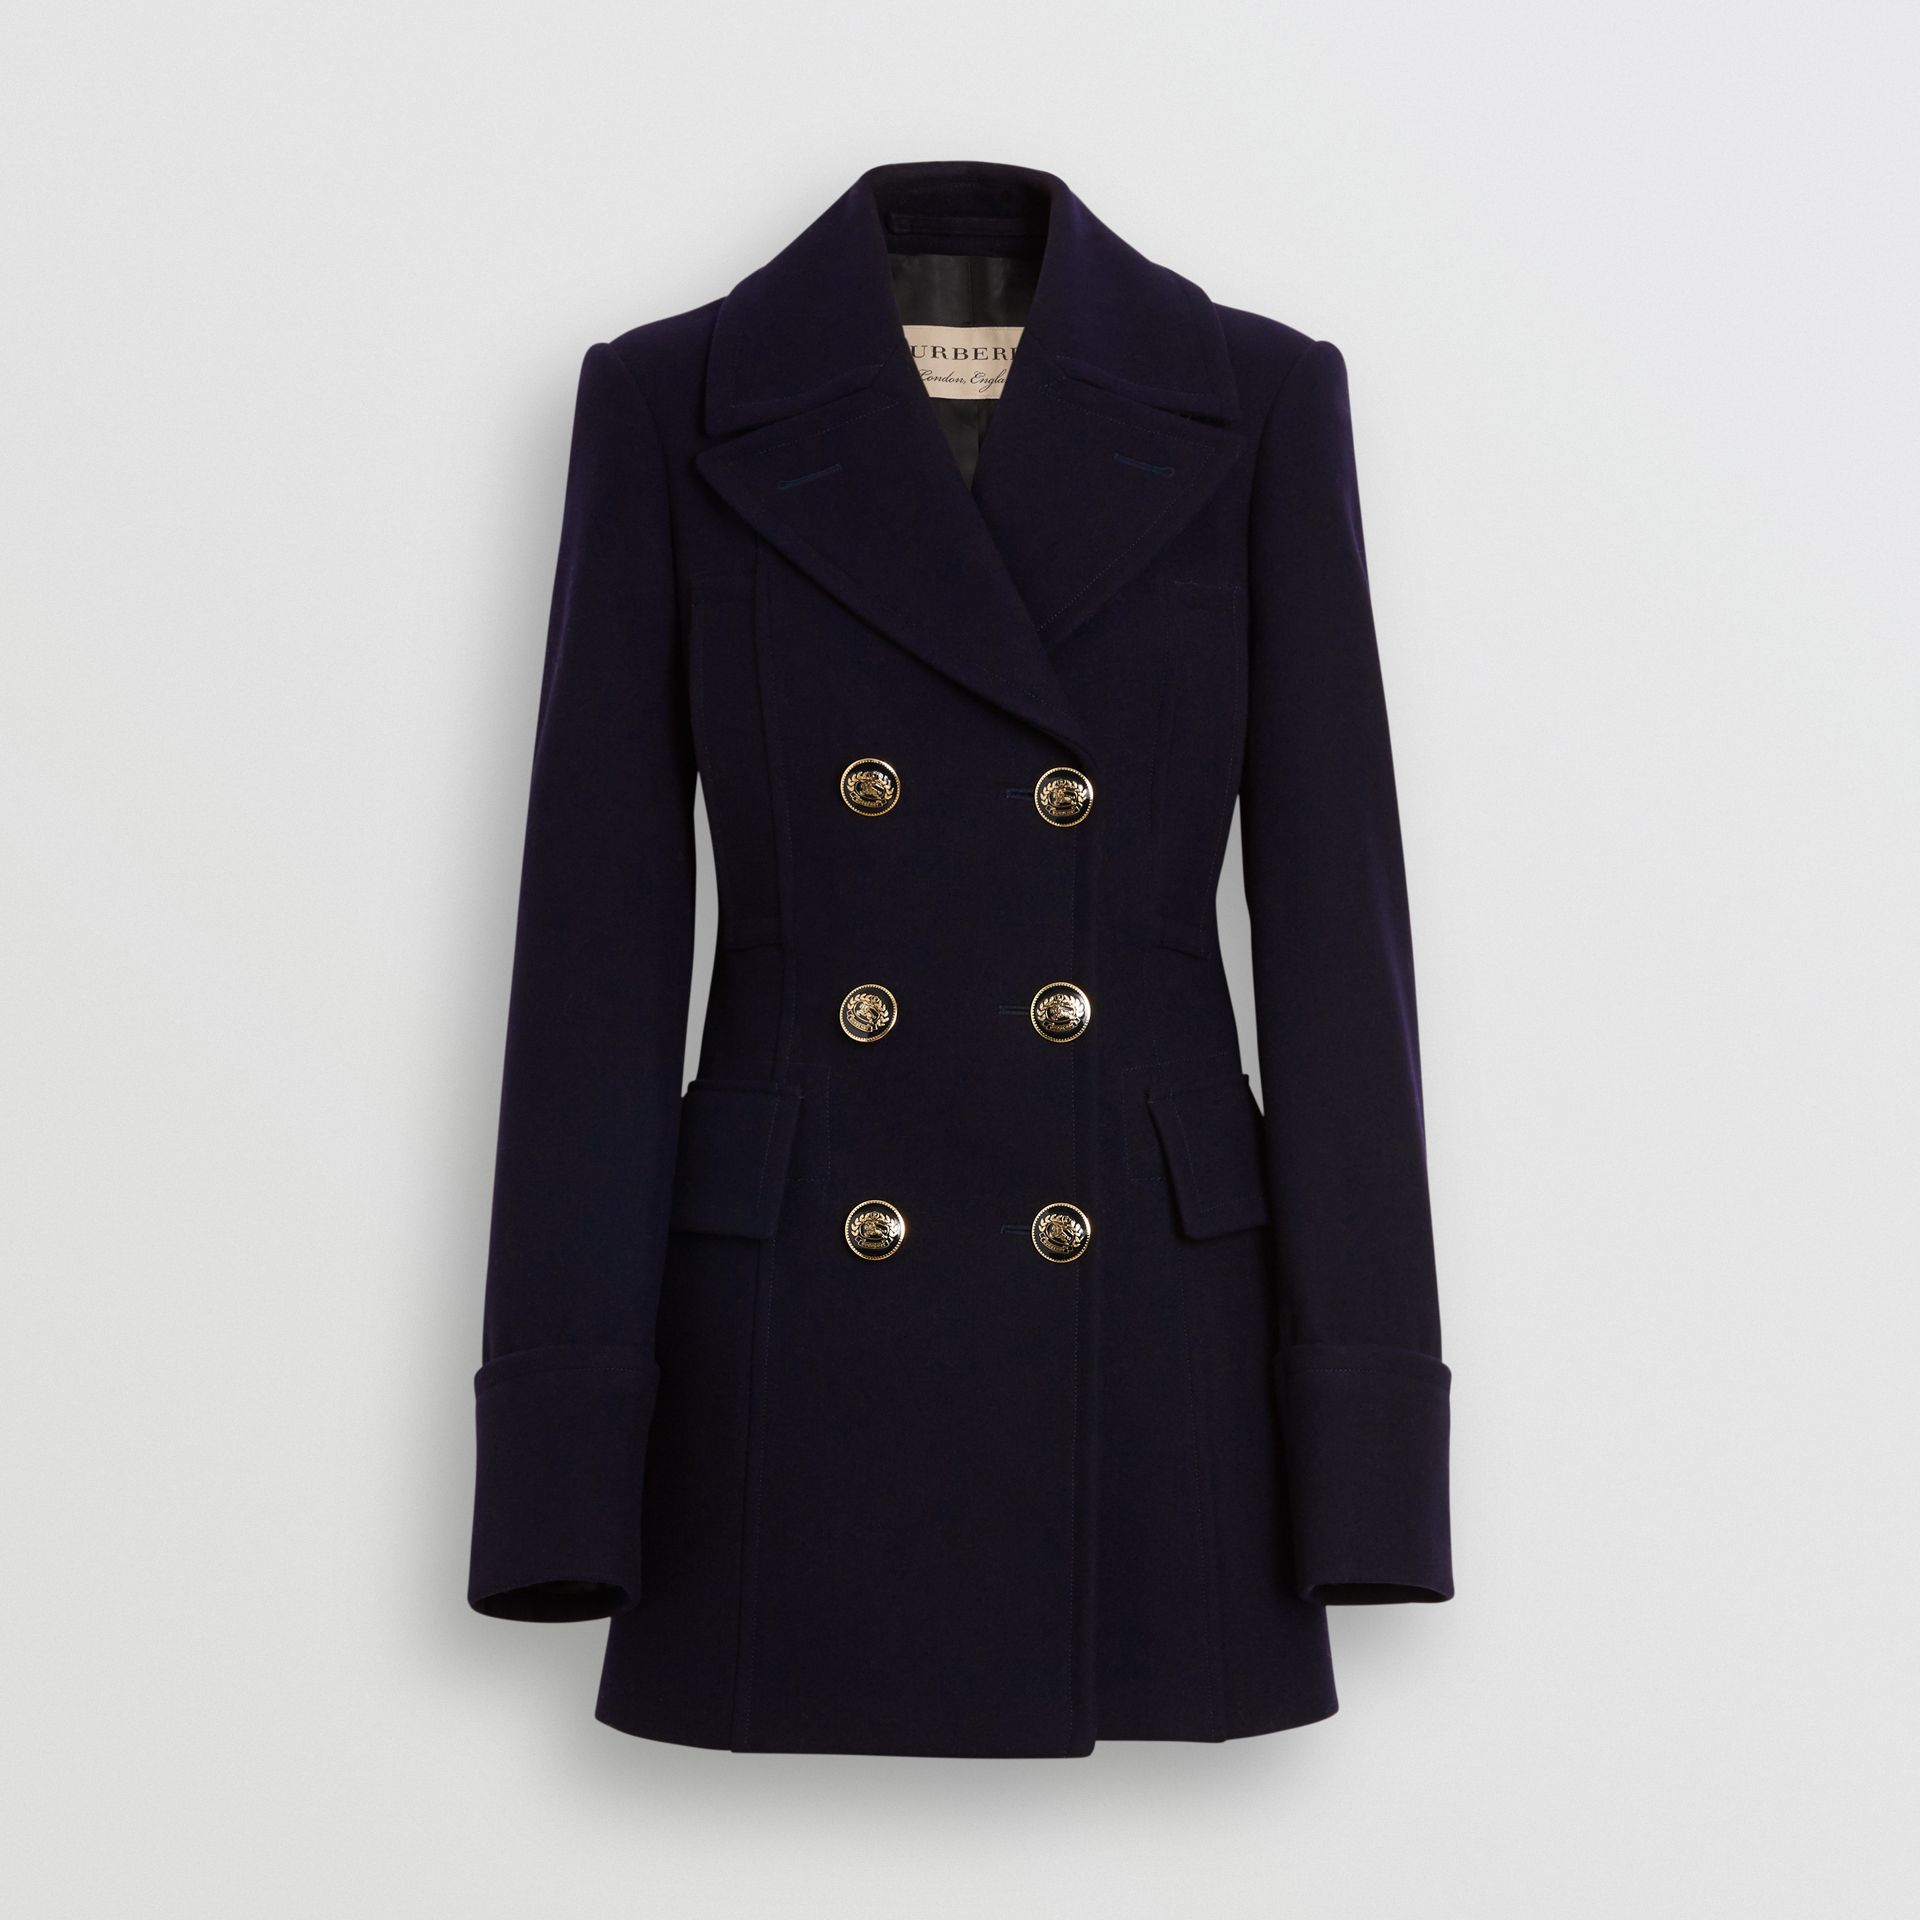 Doeskin Wool Tailored Pea Coat in Navy - Women | Burberry United States - gallery image 1